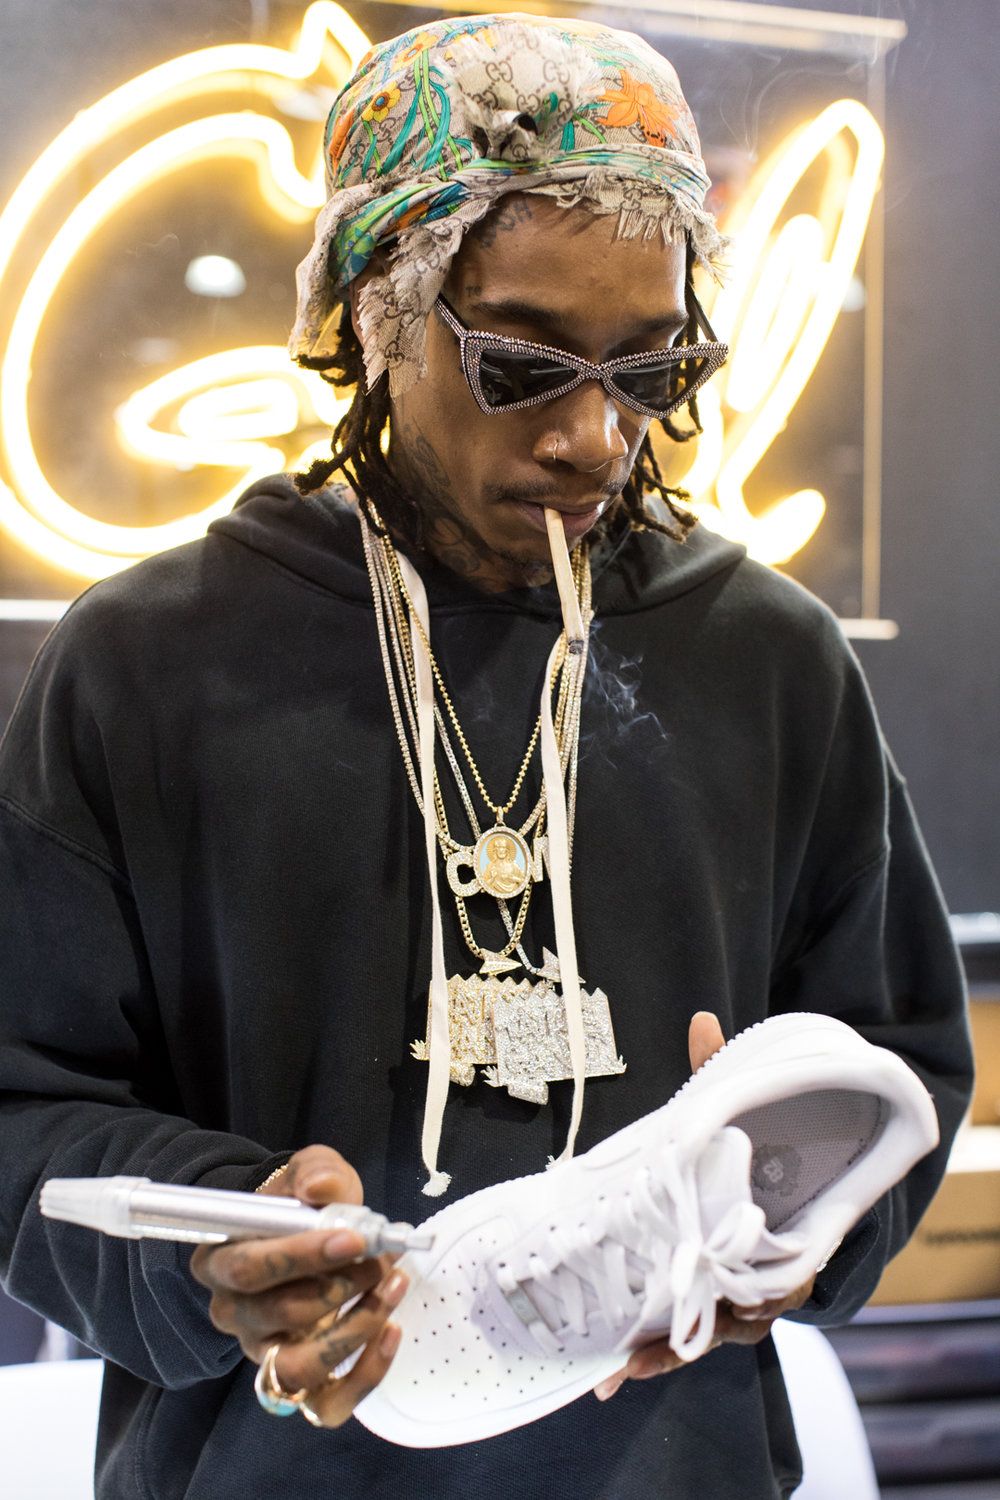 Wiz Khalifa Showed Some Love at ComplexCon! Photo Credit: ComplexCon